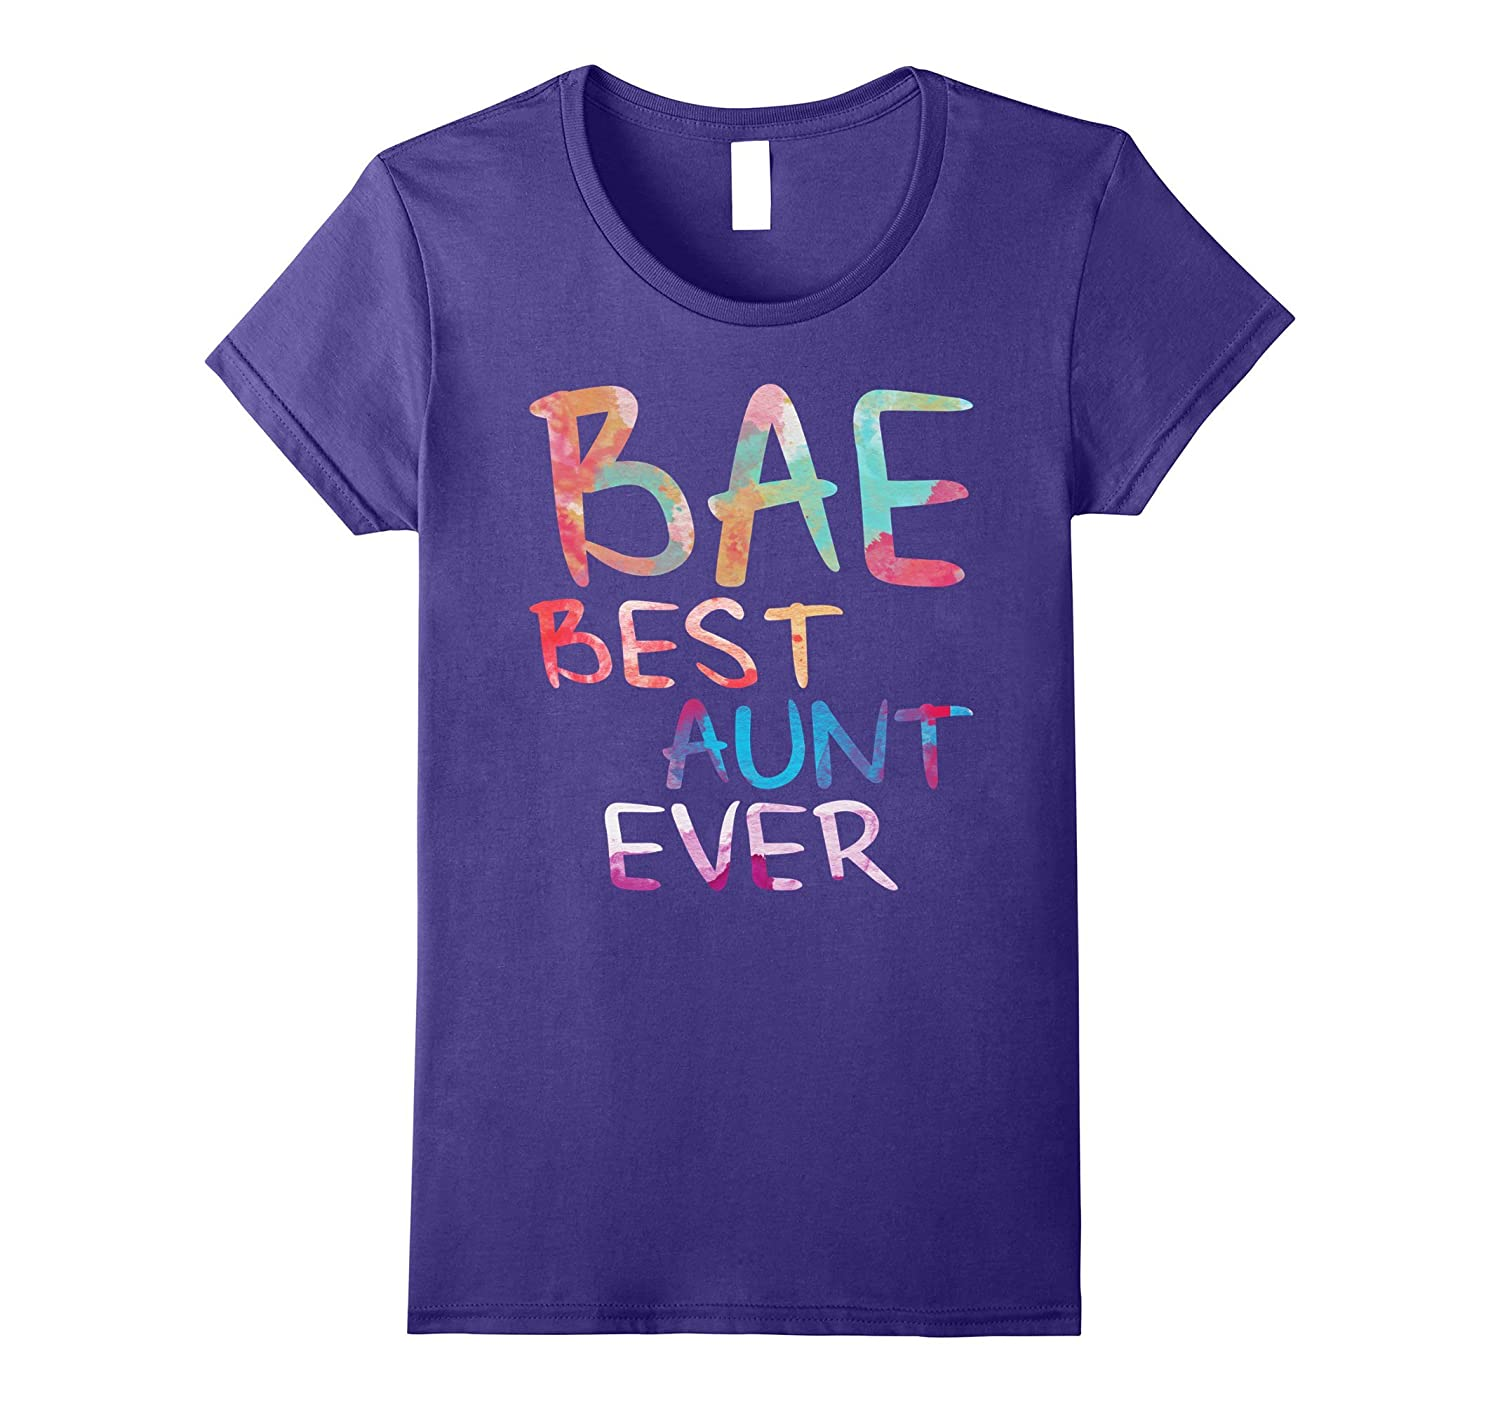 57a37242 Womens BAE Best Aunt Ever T-Shirt Funny Auntie Gift Shirt-ANZ ...